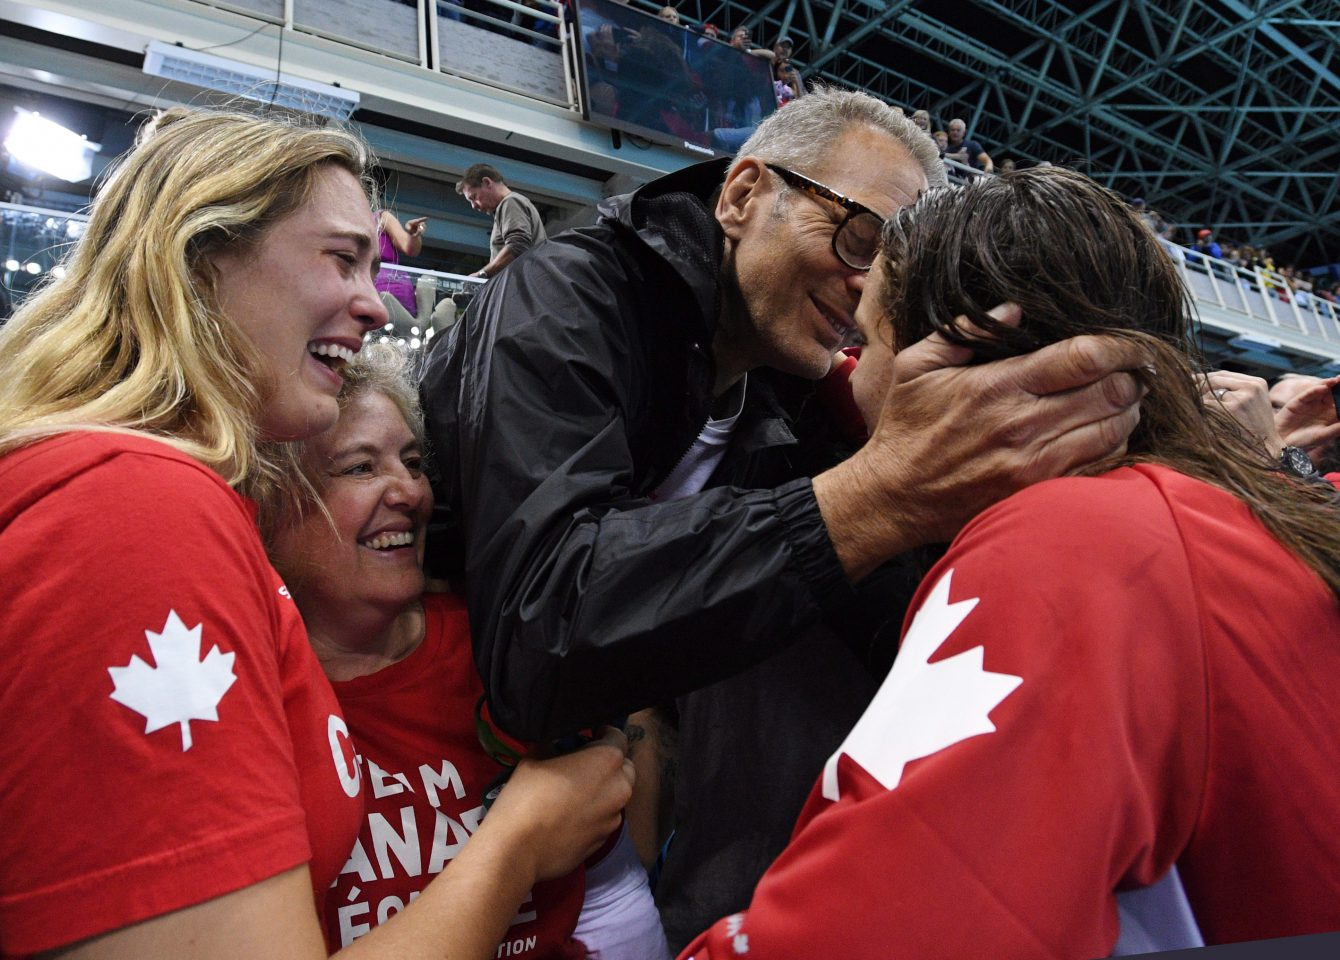 Canada's Penny Oleksiak, right, celebrates with a kiss from her father as her sister and mom look on following her gold-medal performance at the women's 100m freestyle finals during the 2016 Olympic Summer Games in Rio de Janeiro, Brazil, on Friday, Aug. 12, 2016. THE CANADIAN PRESS/Sean Kilpatrick